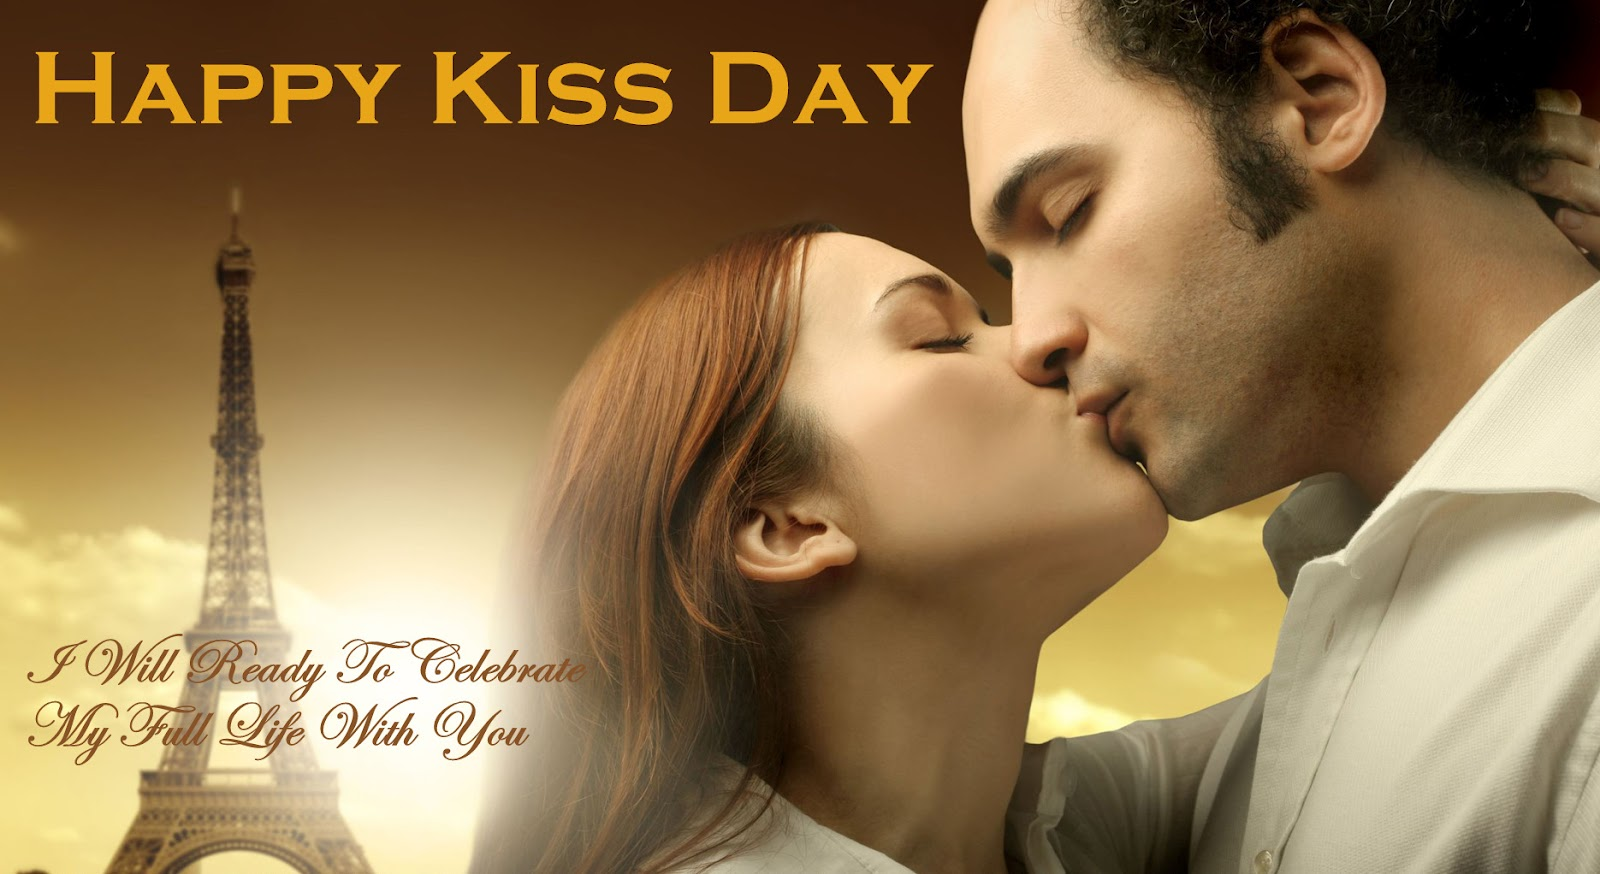 happy kiss day images free